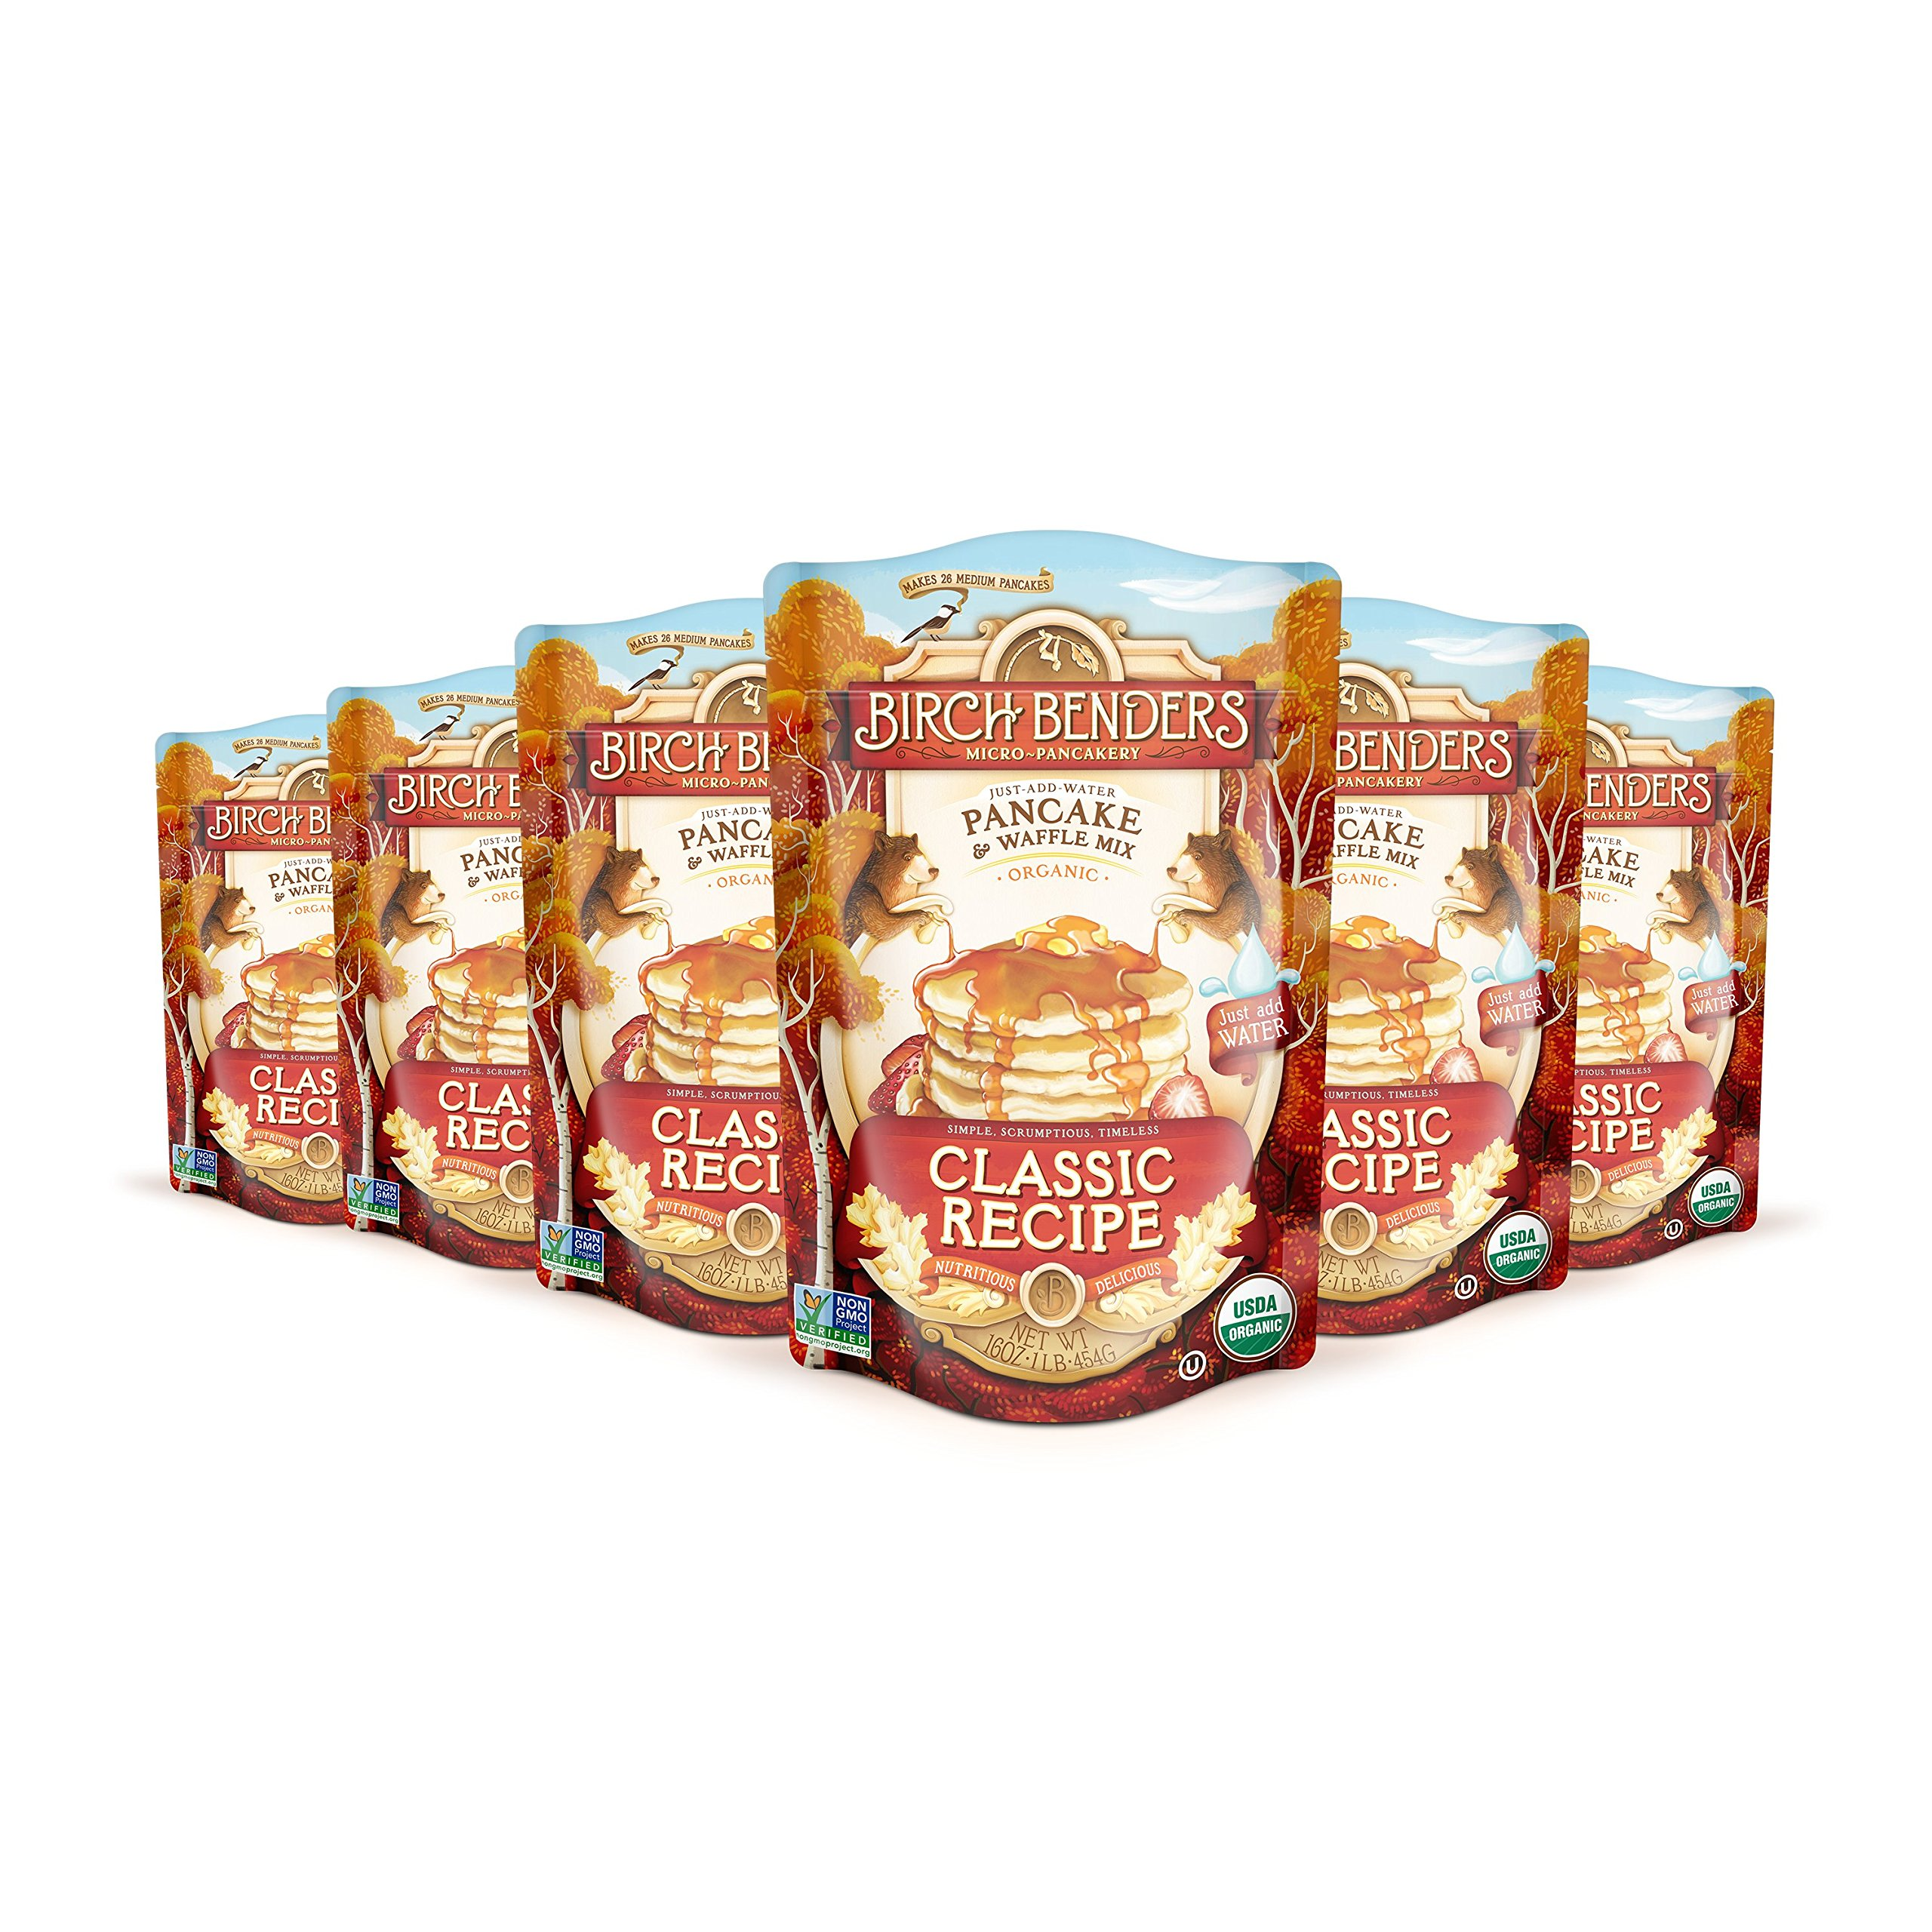 Organic Pancake and Waffle Mix, Classic Recipe by Birch Benders, Whole Grain, Non-GMO, Just Add Water, 96 Ounce Family Pack (16oz 6-pack)